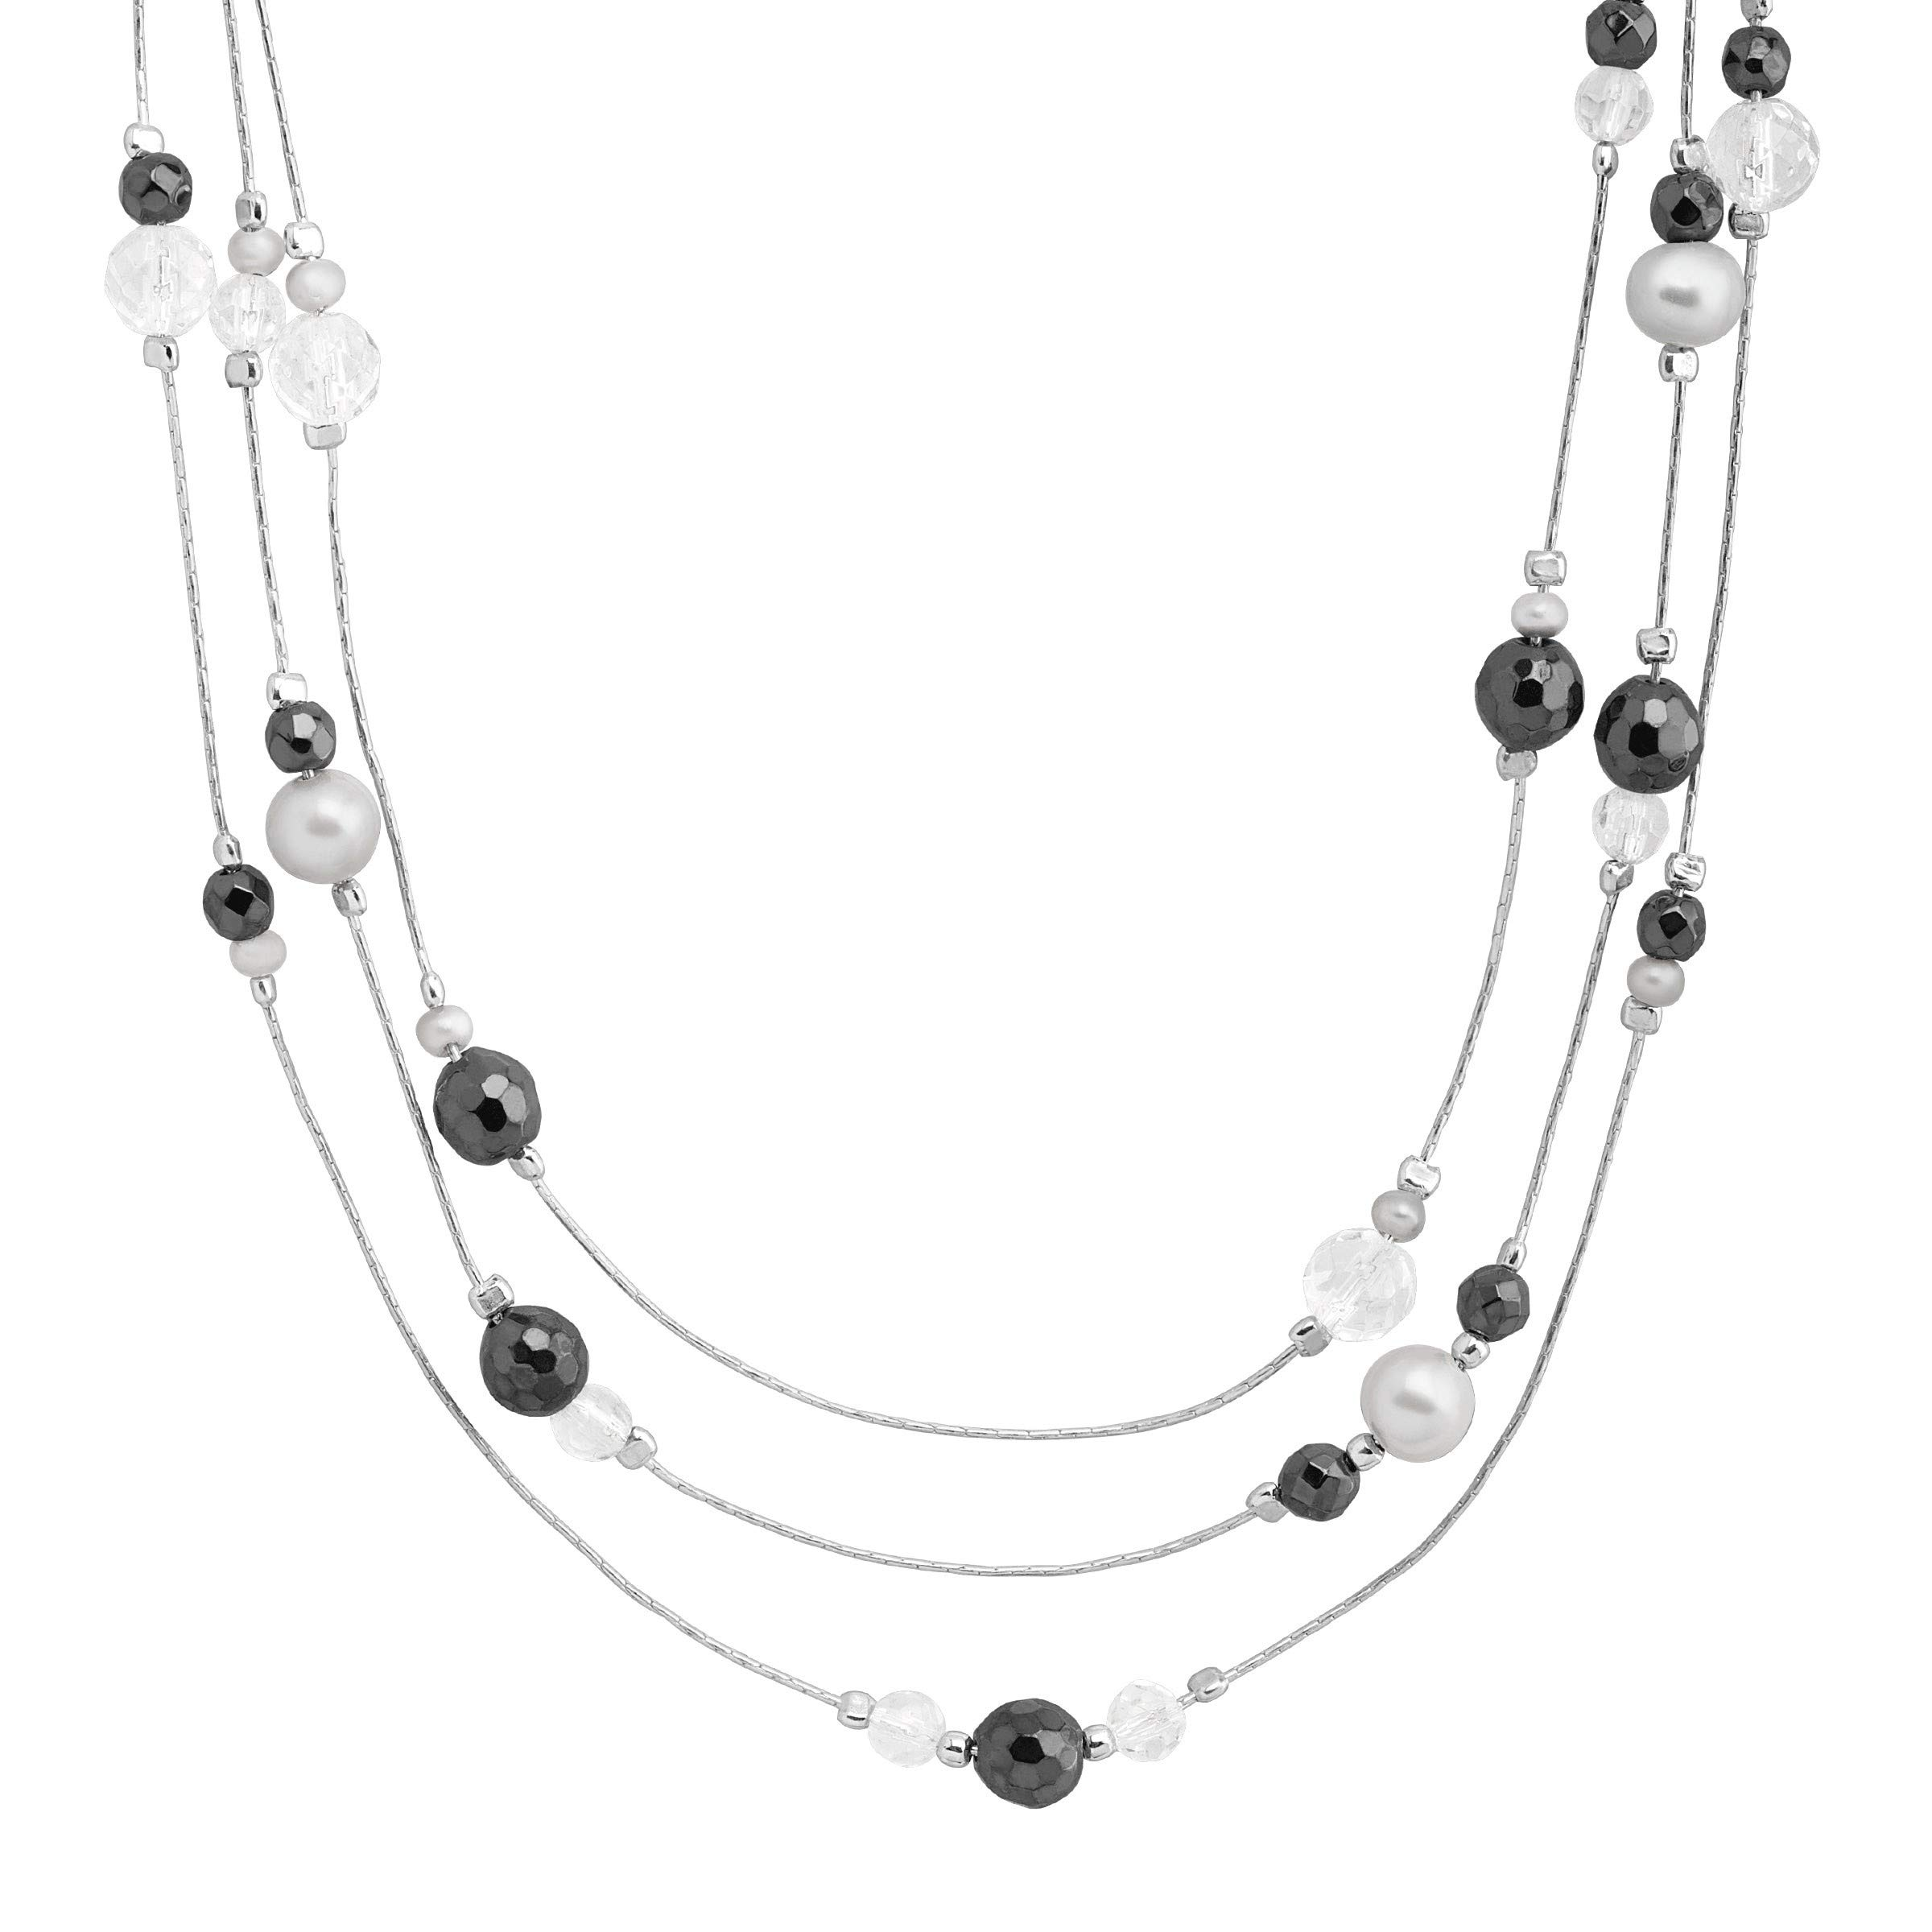 Silpada 'Moeraki' Natural Hematite, Crystal, Fw Cultured Pearl Three-Layer Necklace in Sterling Silver